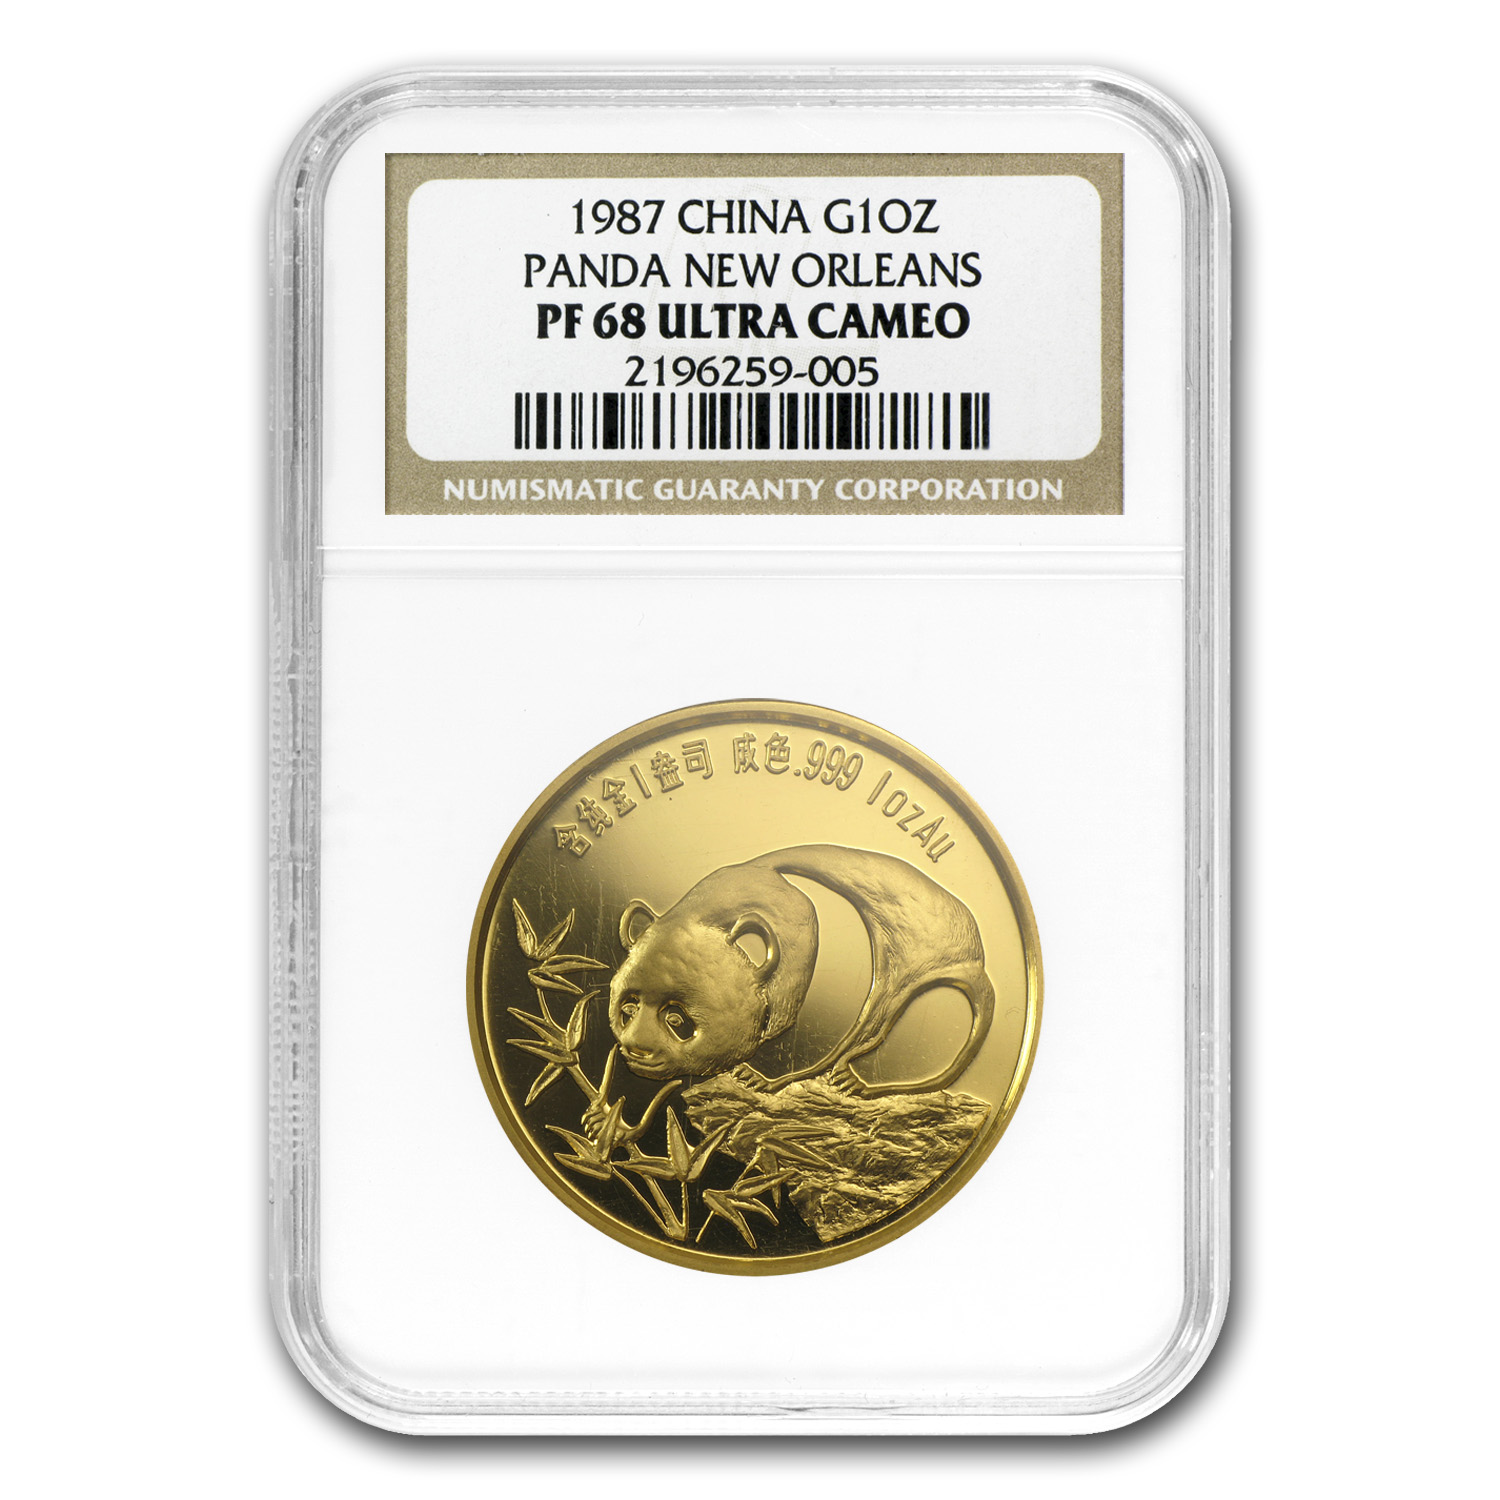 1987 China 1 oz Gold Panda PF-68 NGC (New Orleans)